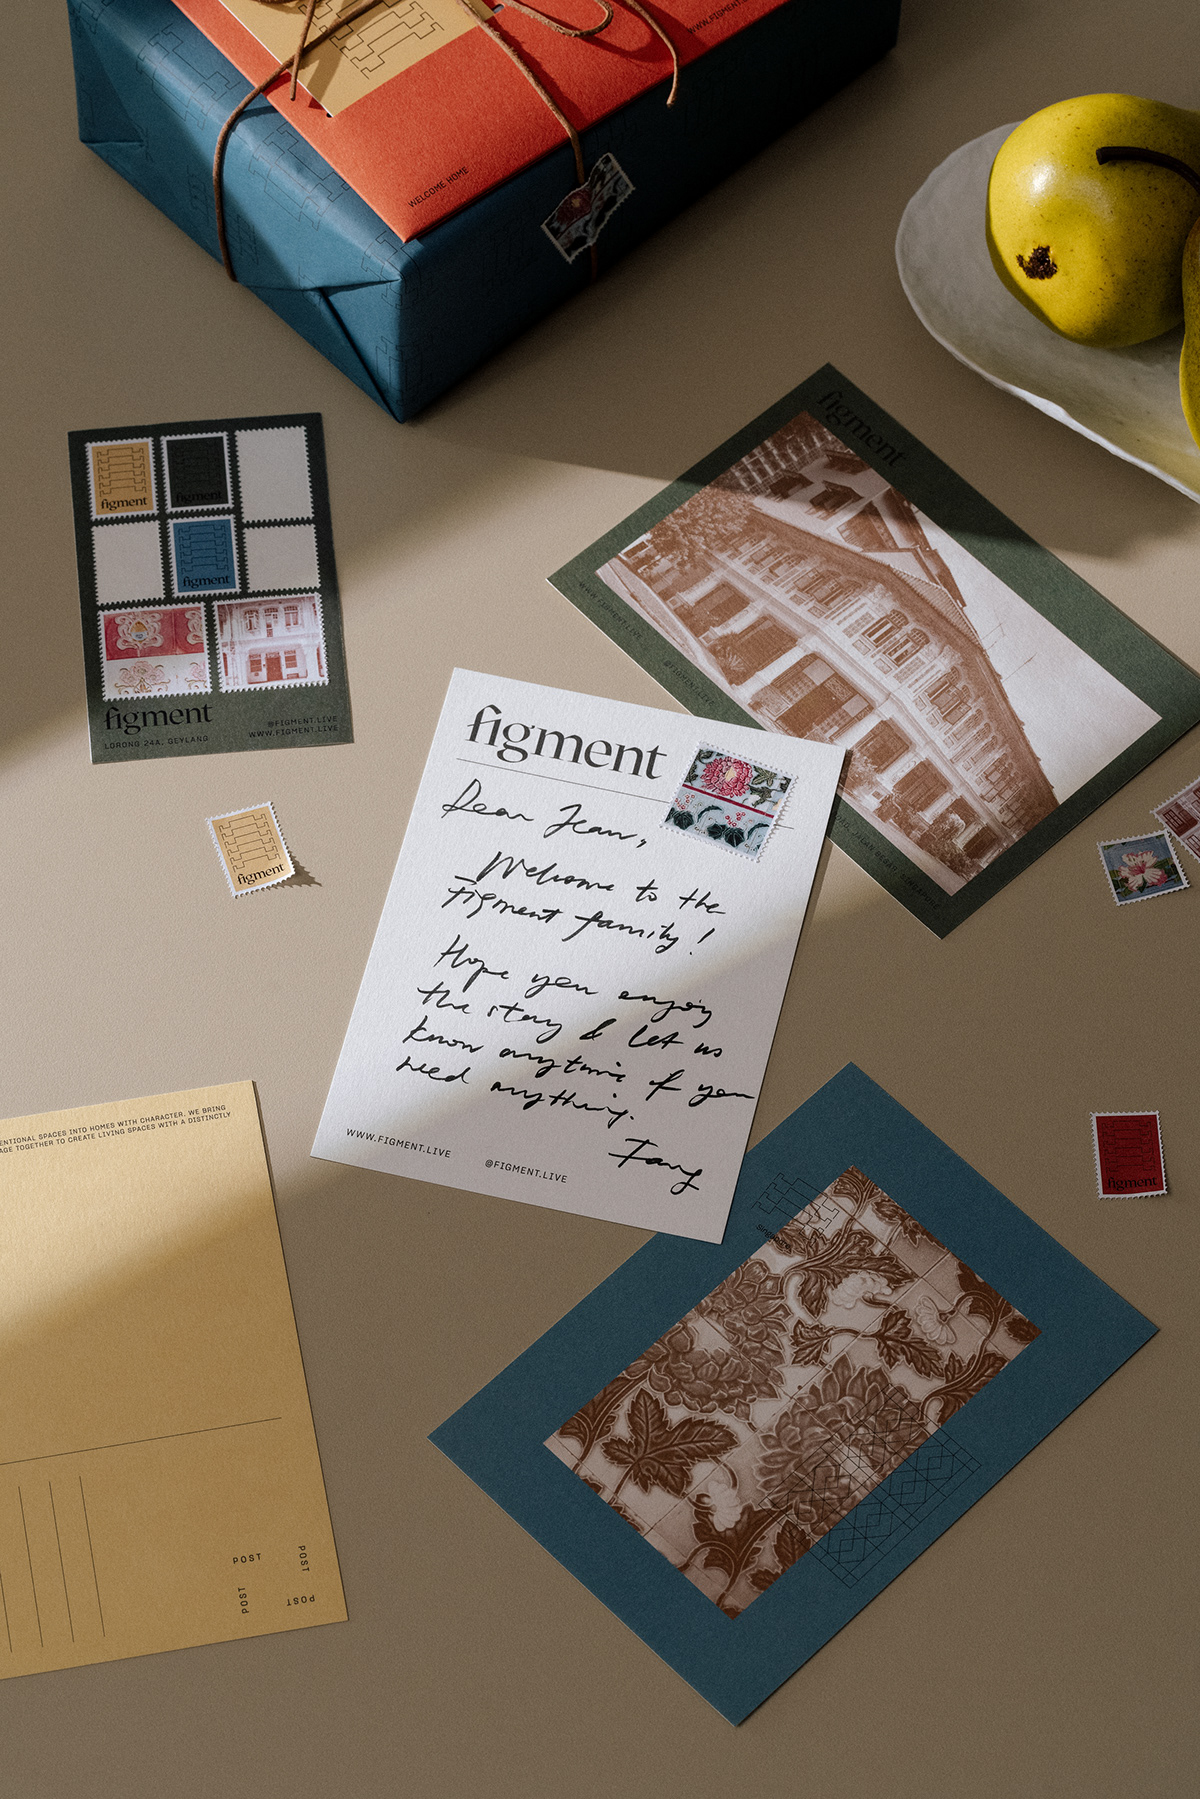 Thumbnail for Figment Co-living Adds A Charming, Homey Touch To A New Branding System